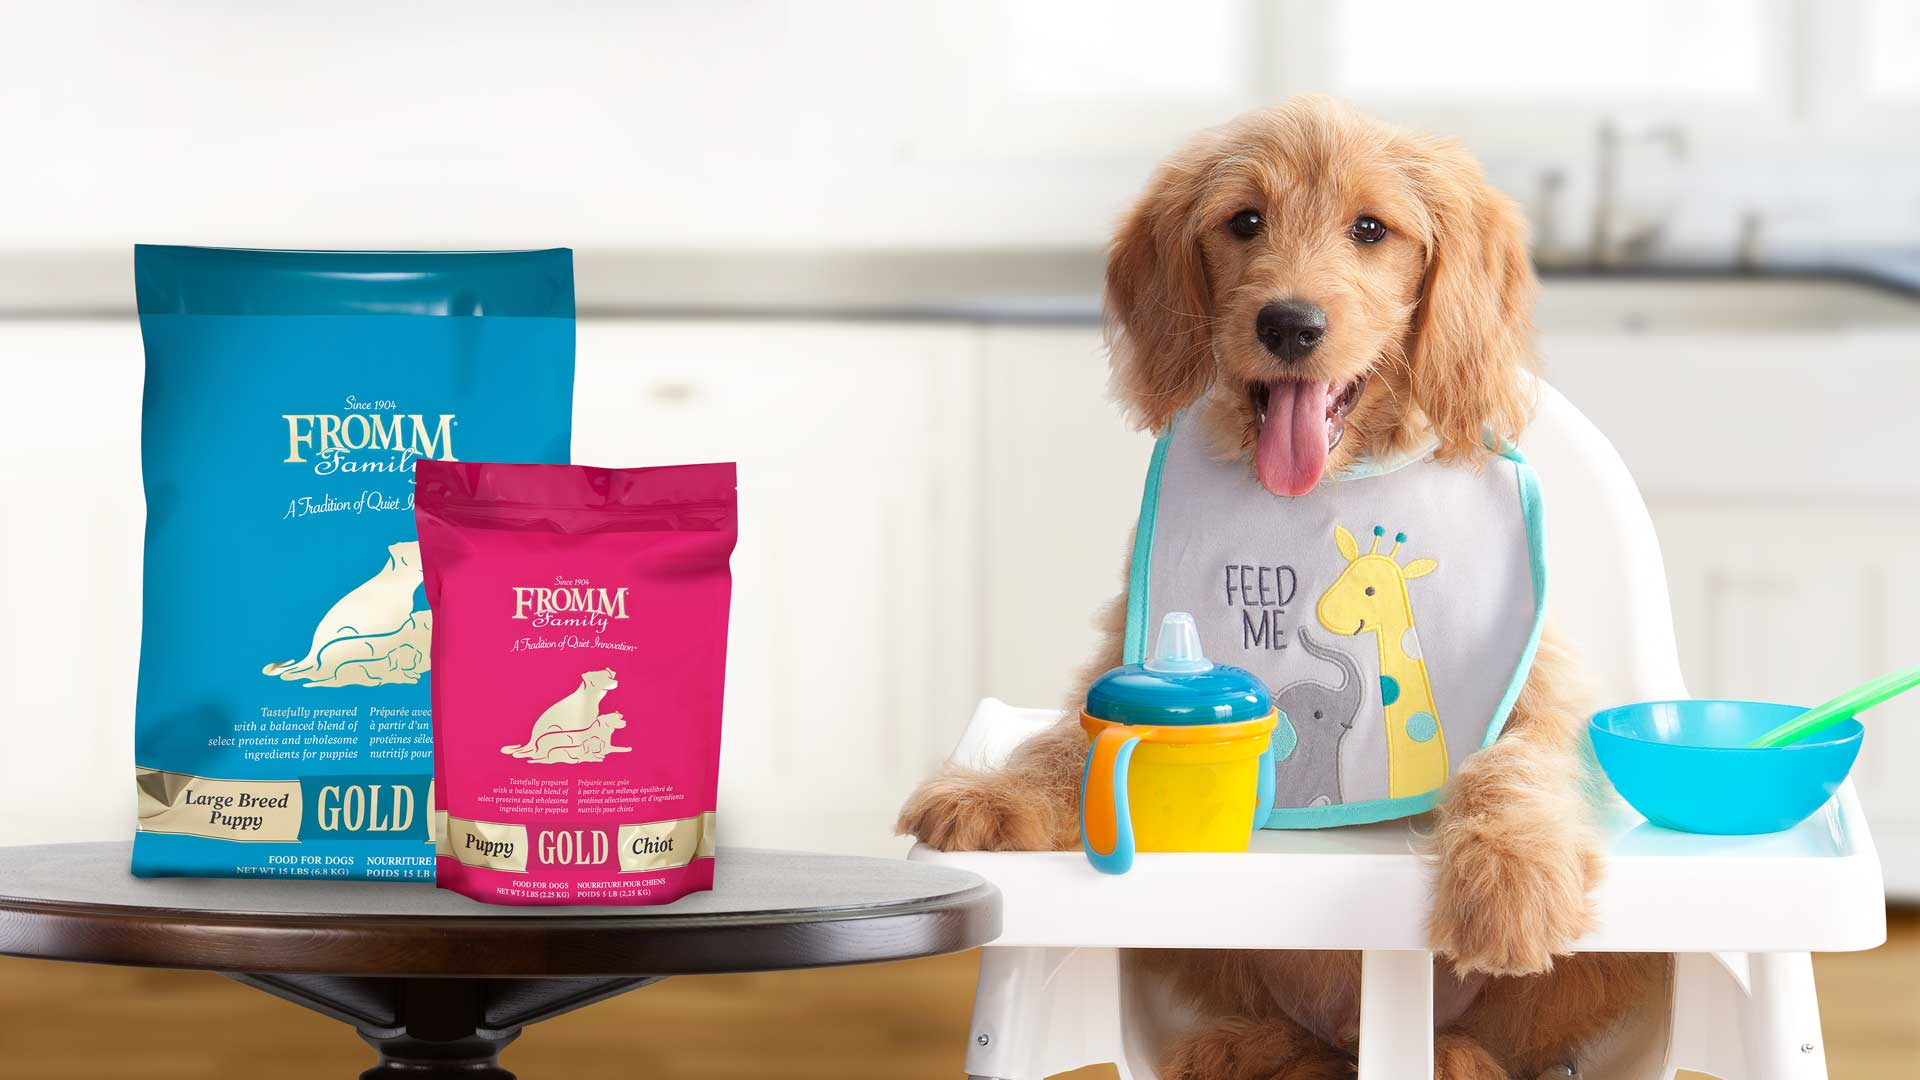 Fromm Family Pet Food A 5th Generation Family Owned Operated Pet Food Company